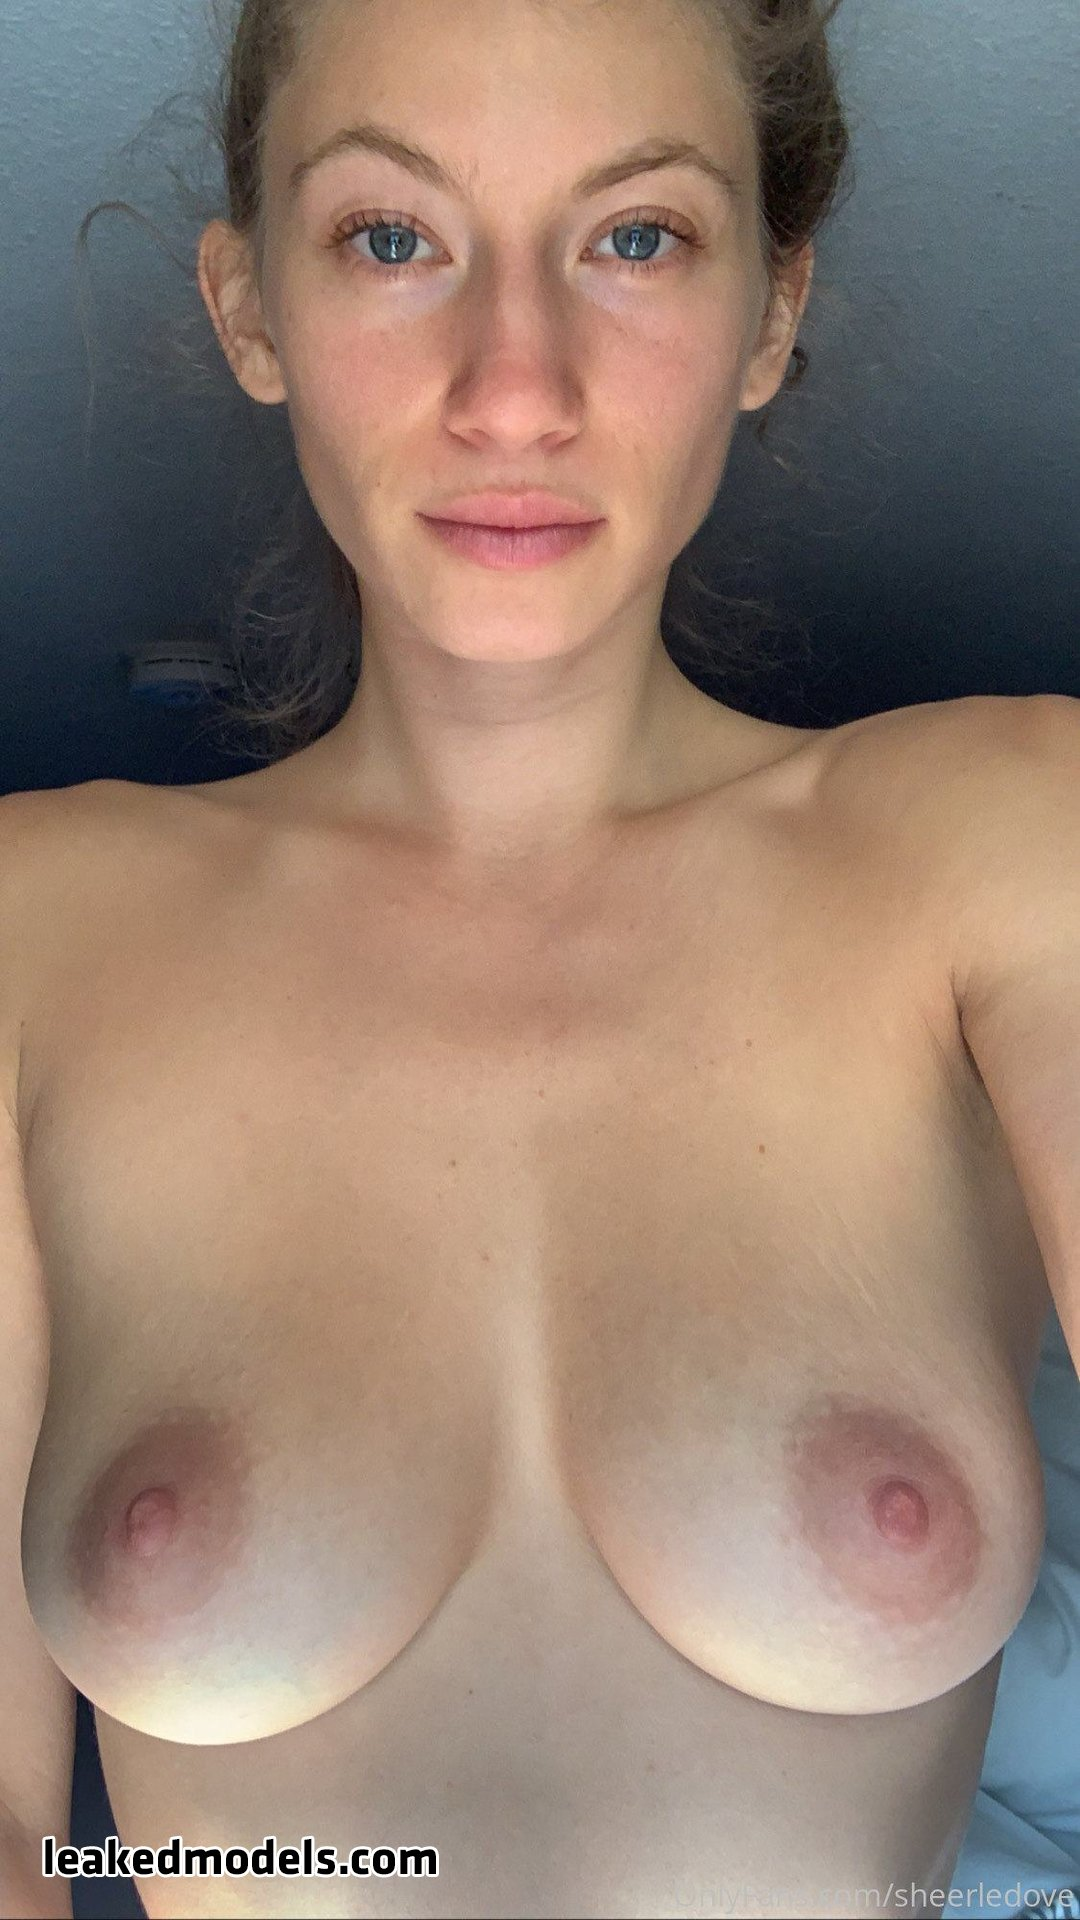 Sheerle Dove OnlyFans Nude Leaks (37 Photos)